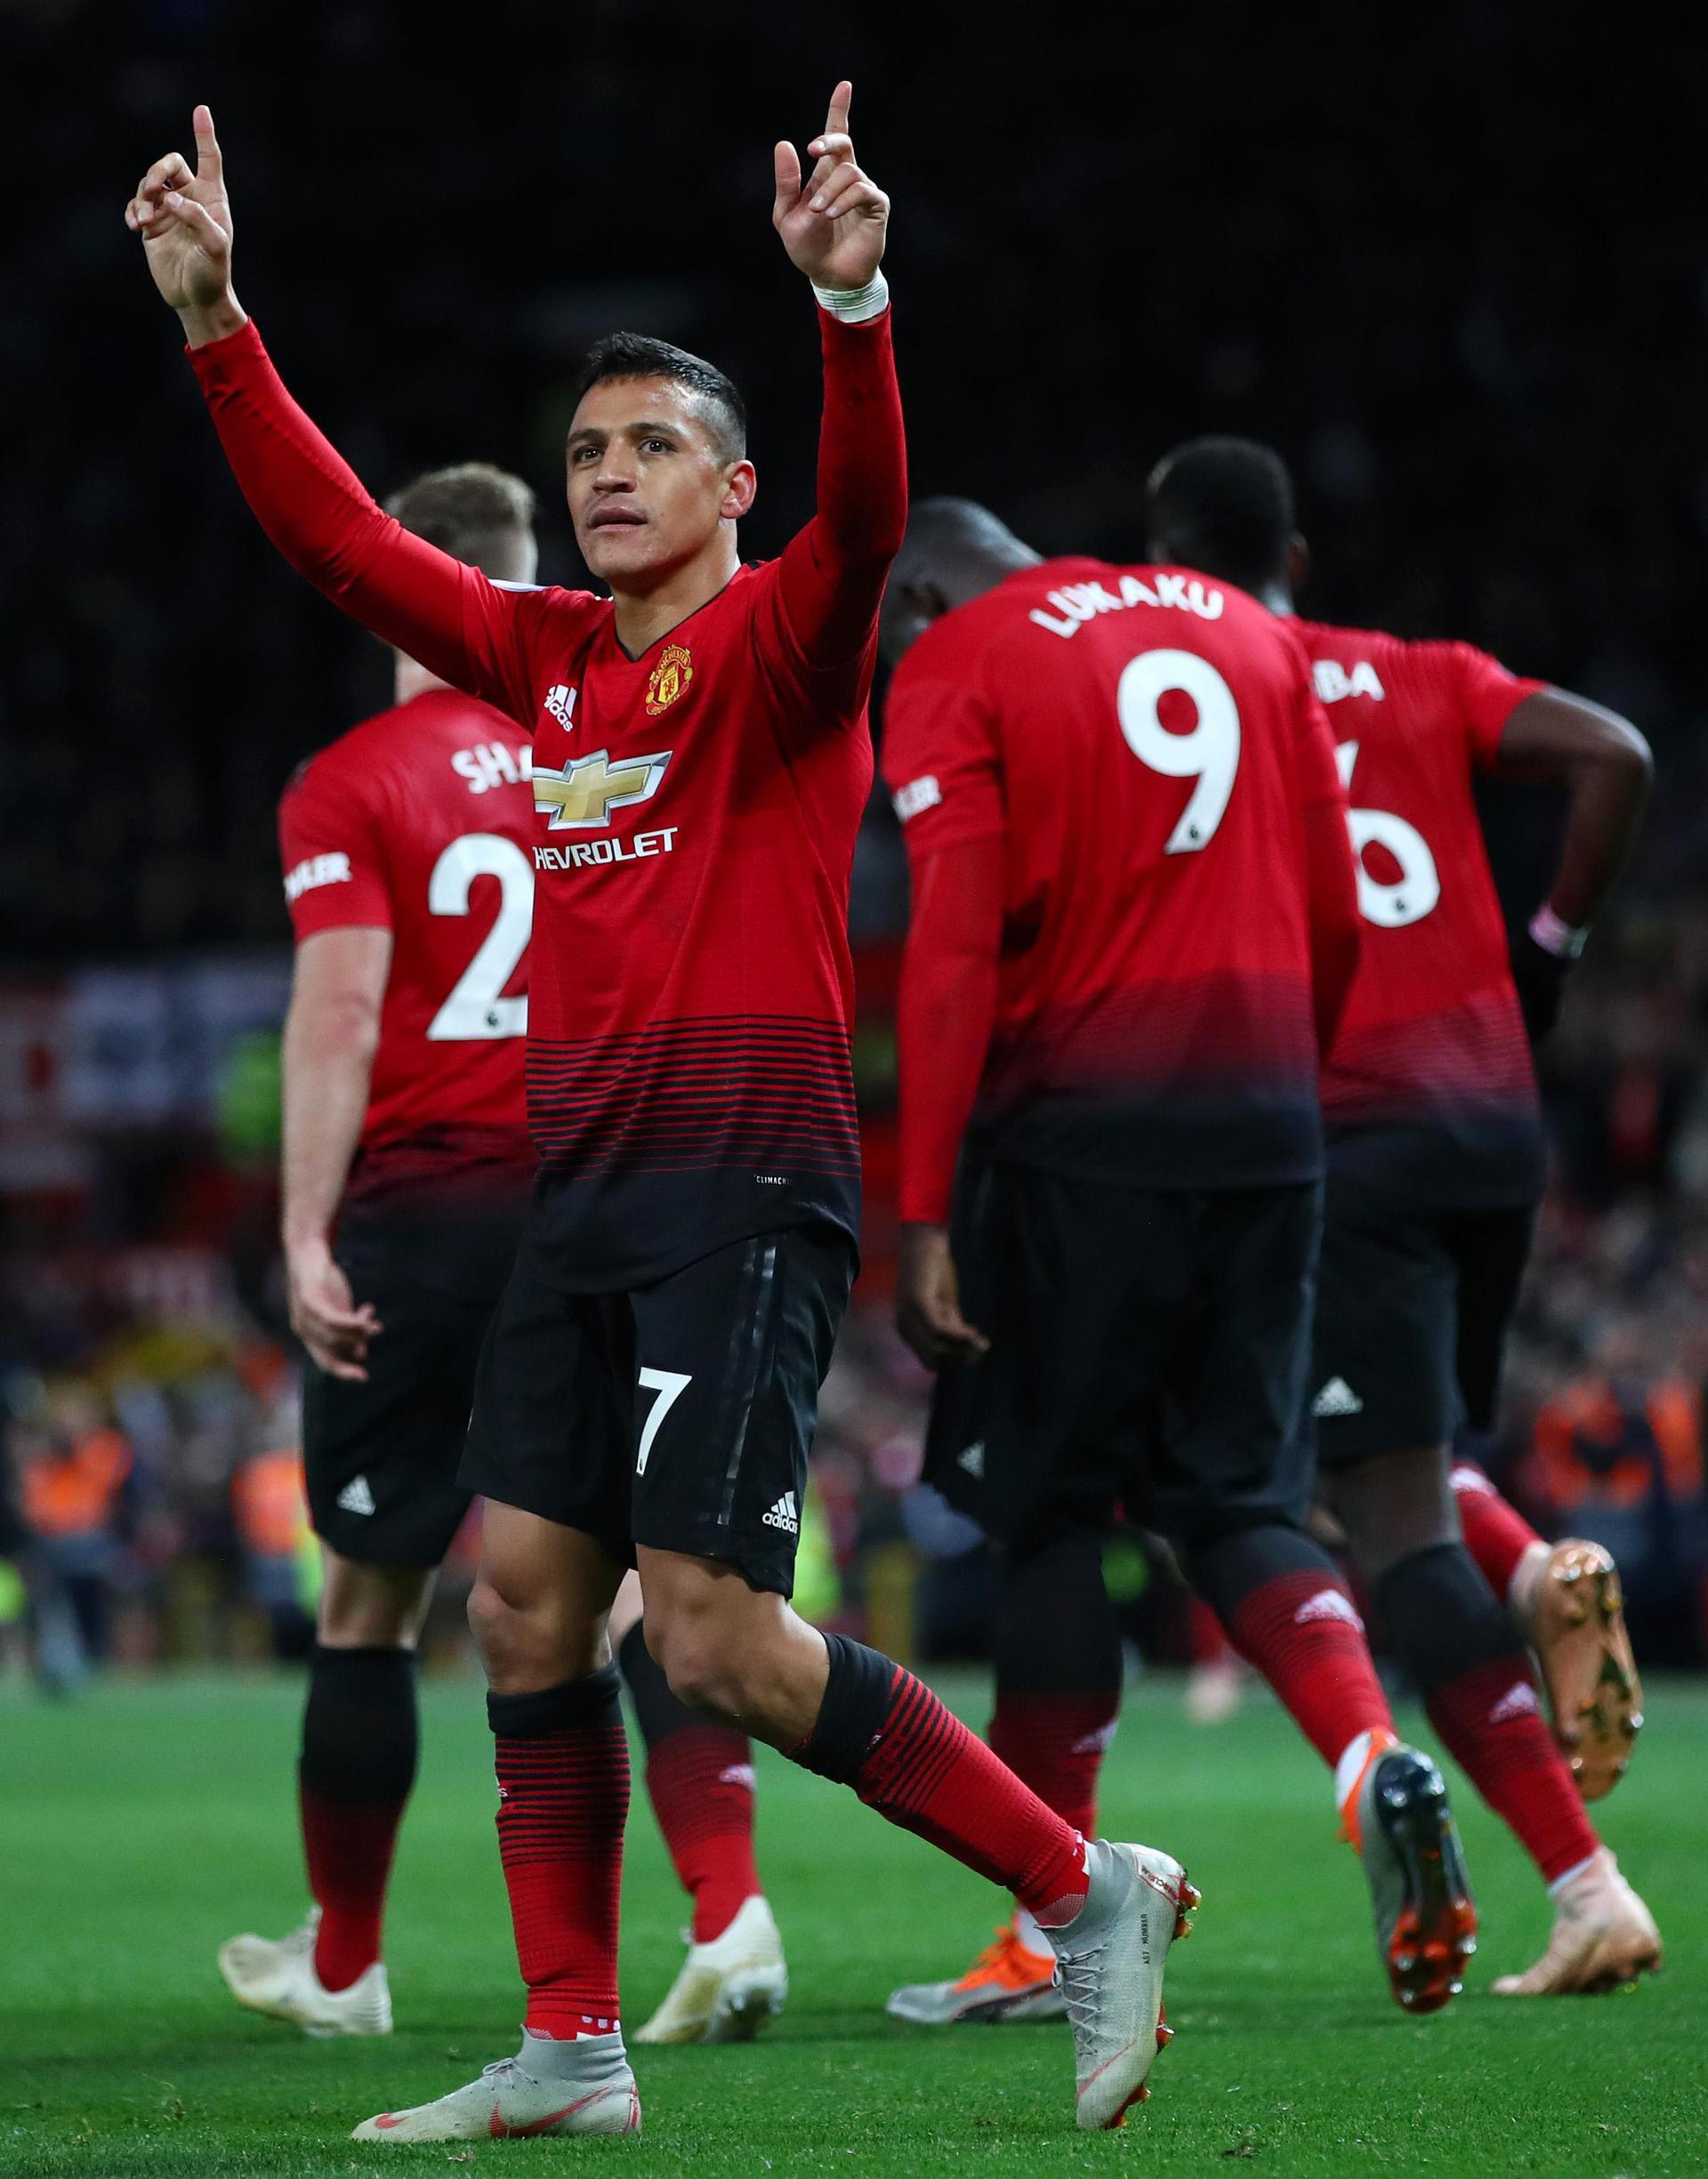 Alexis Sanchez celebrates after scoring the winning goal against Newcastle United